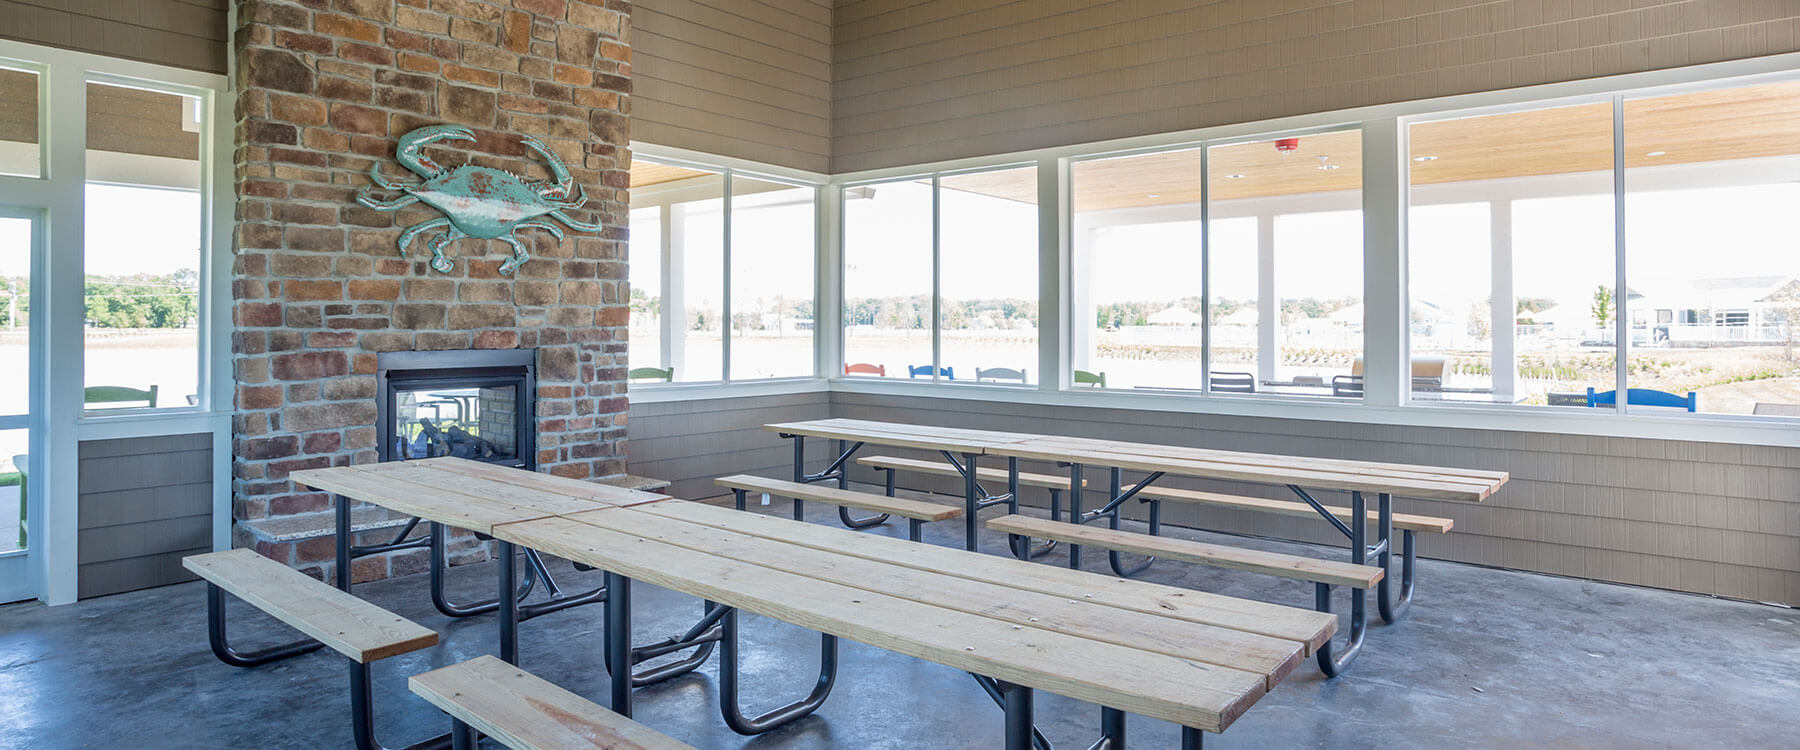 millville by the sea crab shack interior 1800x750